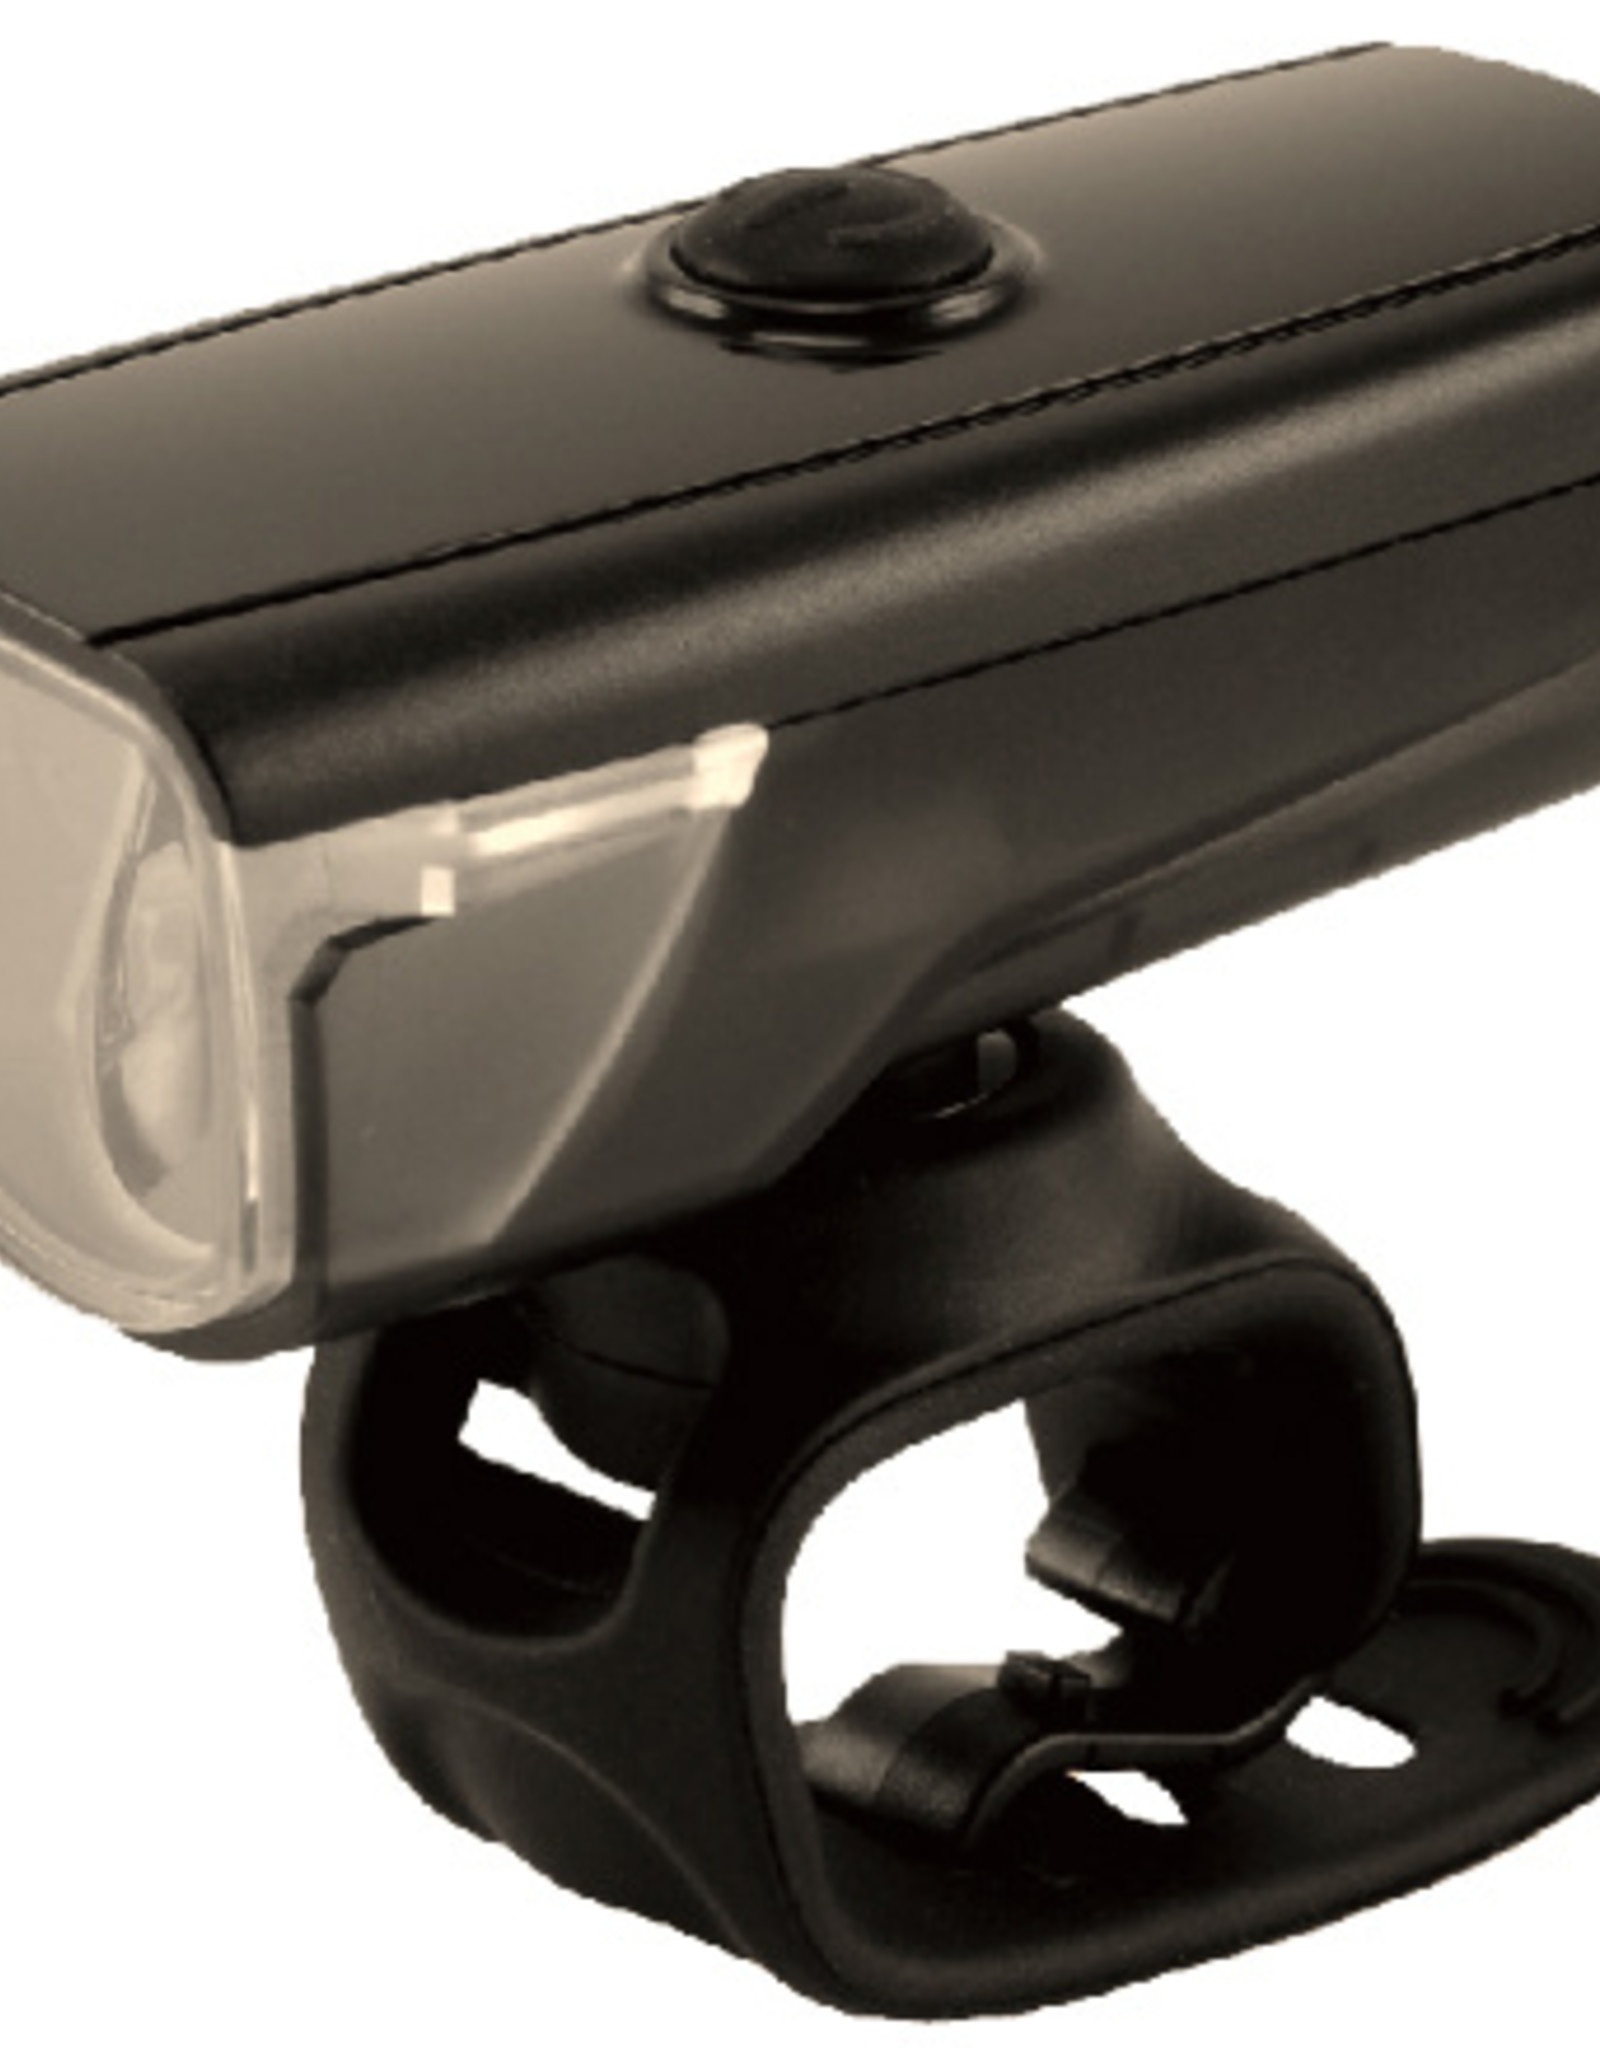 Smart Rays 150 (150 Lumens / 25 LUX) Front USB Rechargeale Light in Black